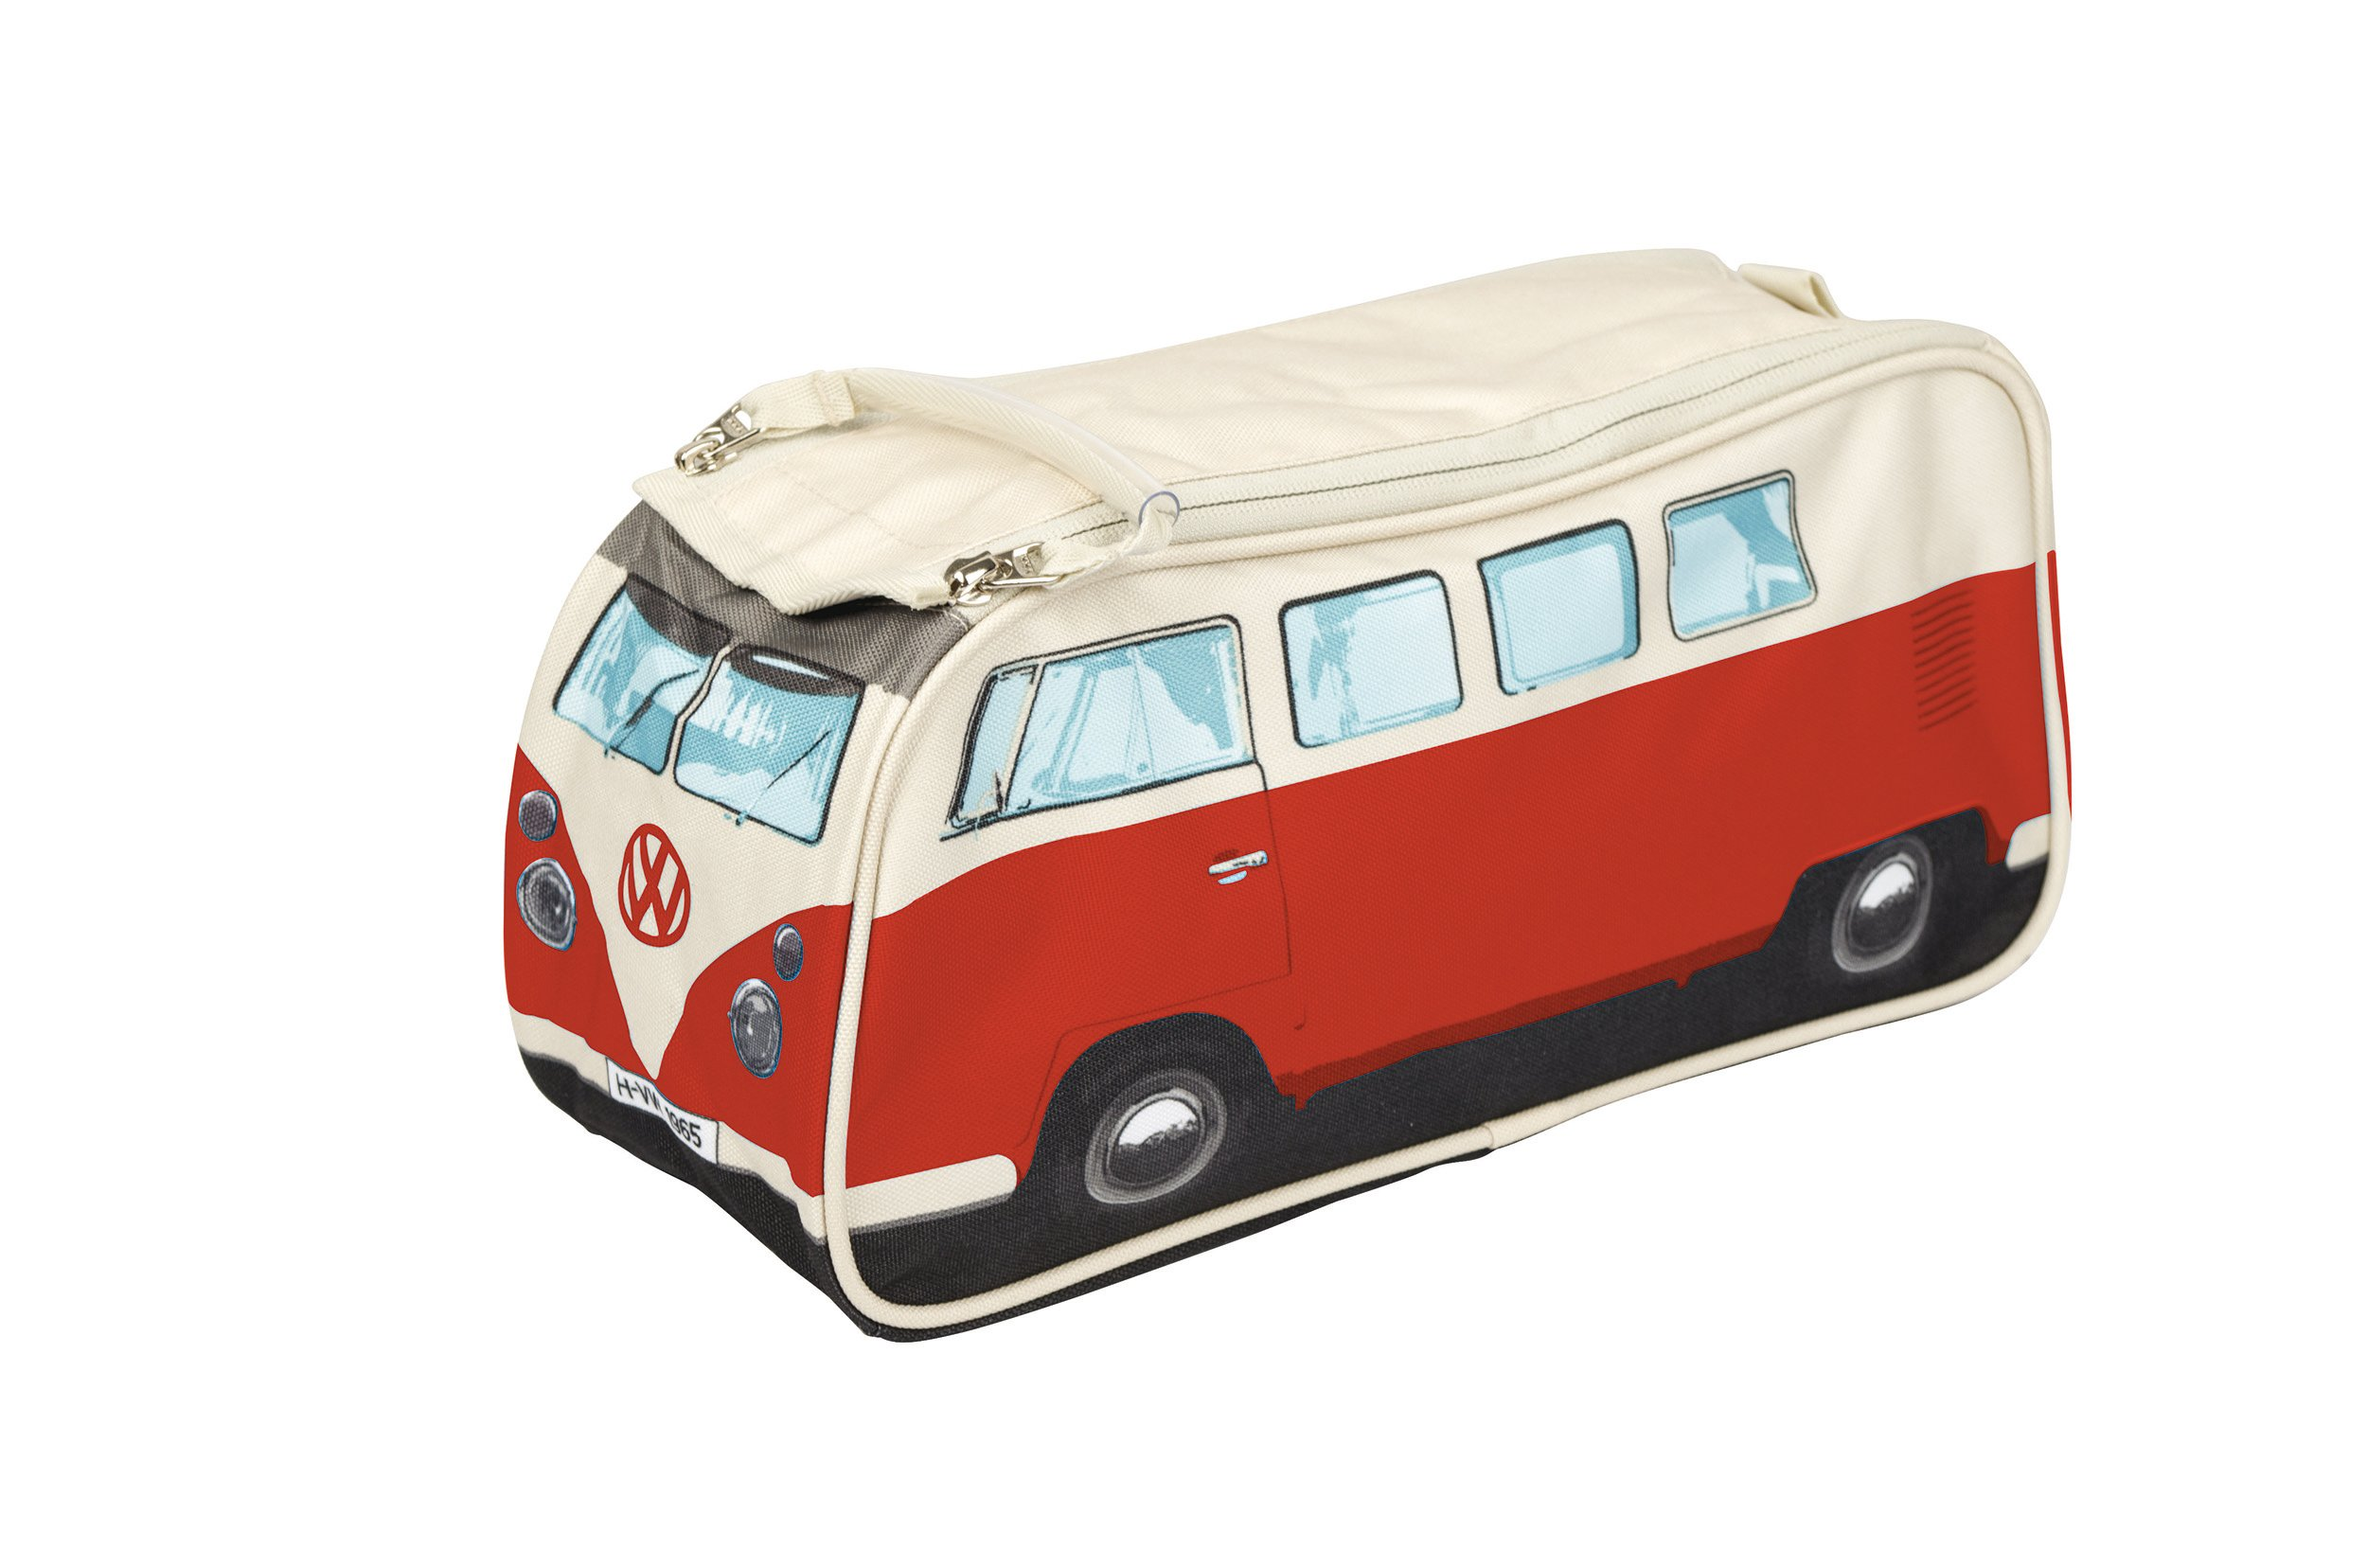 9cdc26b7d6 VW Volkswagen T1 Camper Van Toiletry Wash Bag - Red - Multiple Color  Options Available